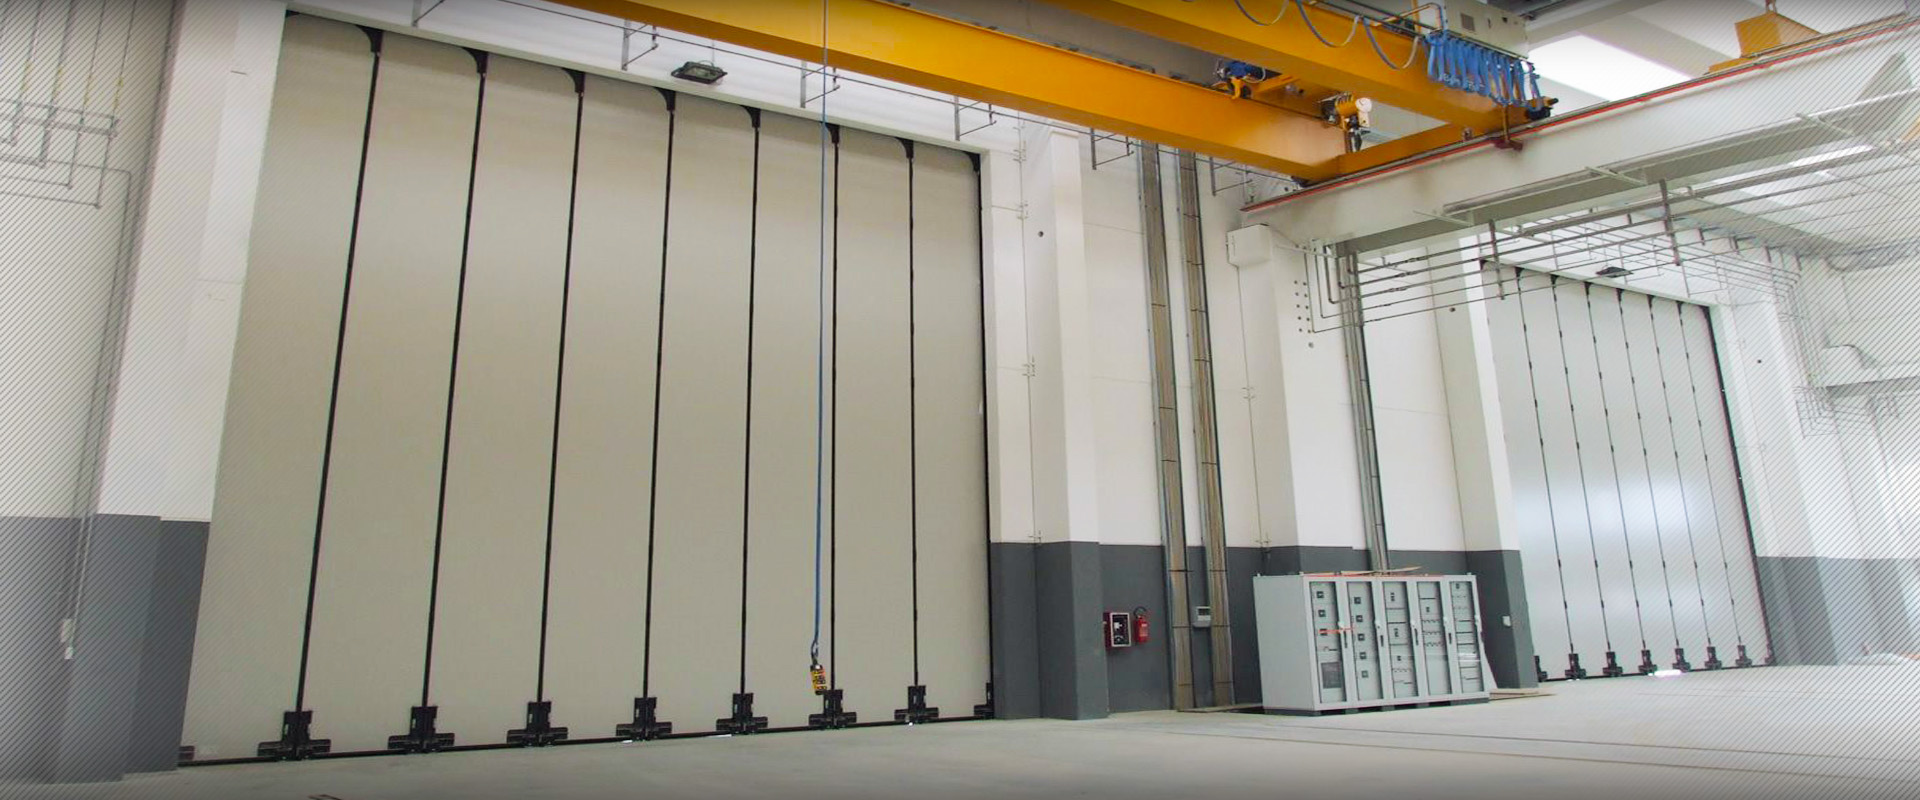 Industrial sliding door IMVA 9.jpg